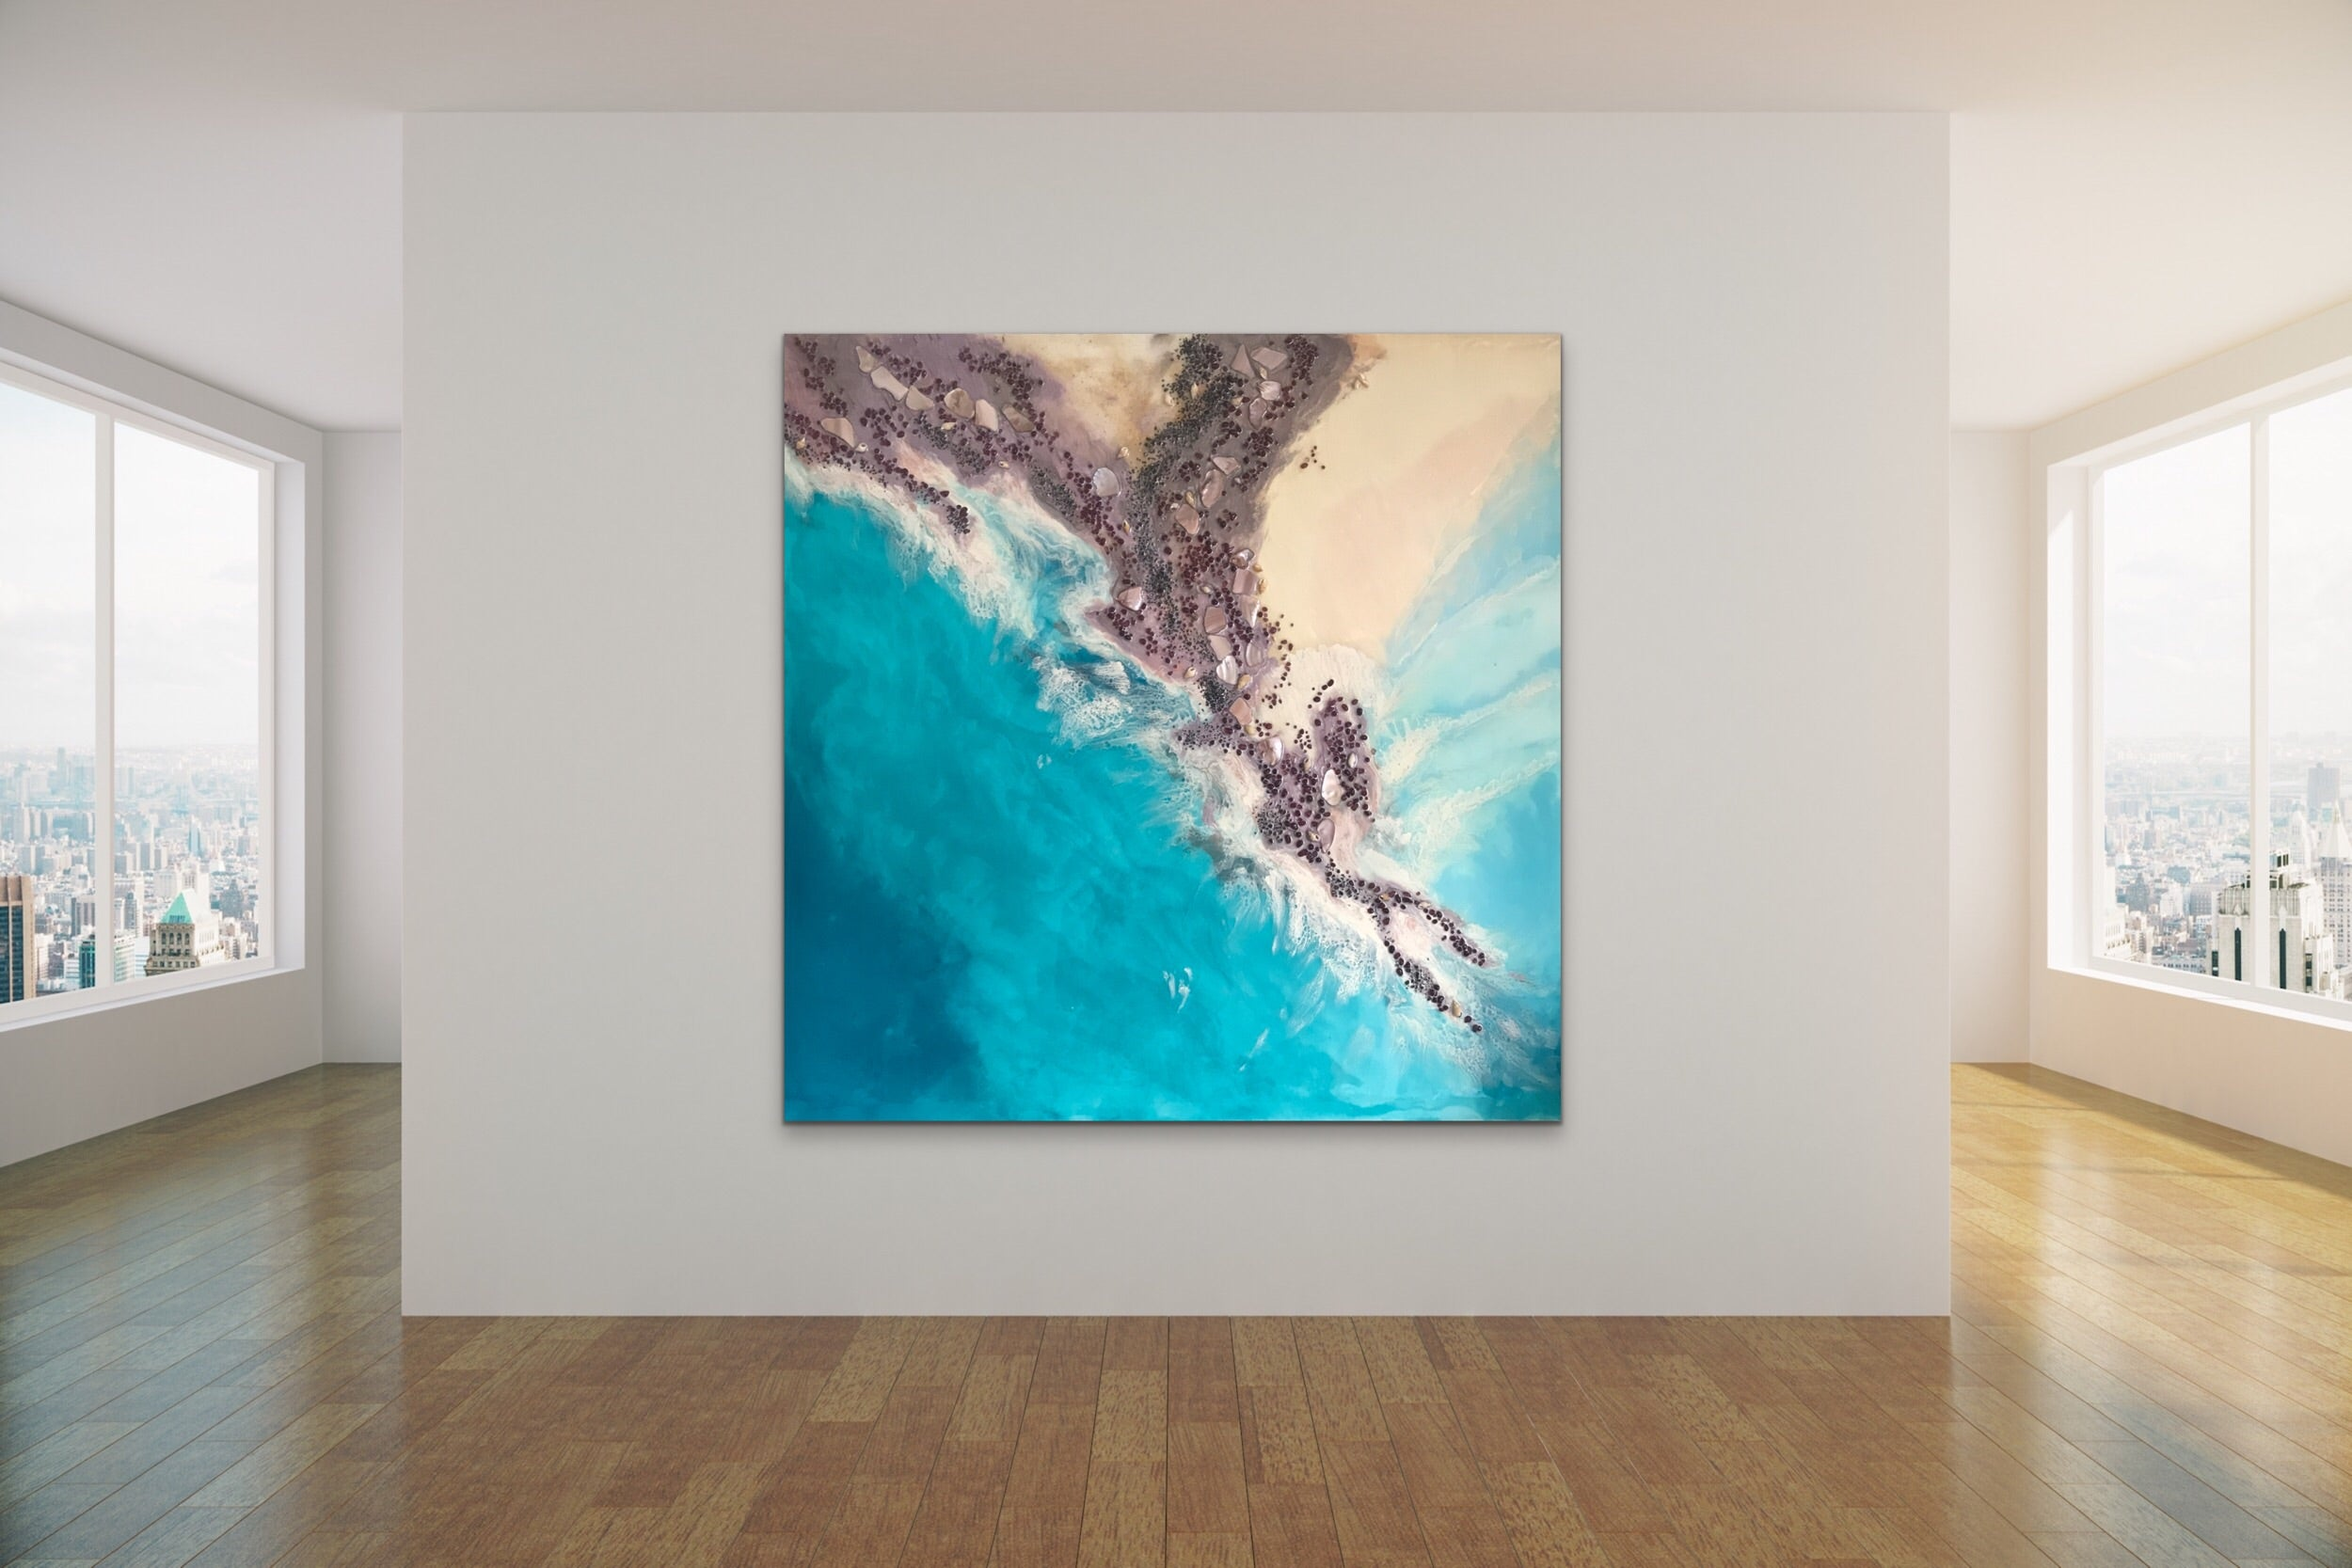 Teal Blue Ocean Wave. Byron Bay Magic. Original Artwork. Antuanelle 3 Magic with Mussels and Garnet. Abstract Seascape 90x90cm